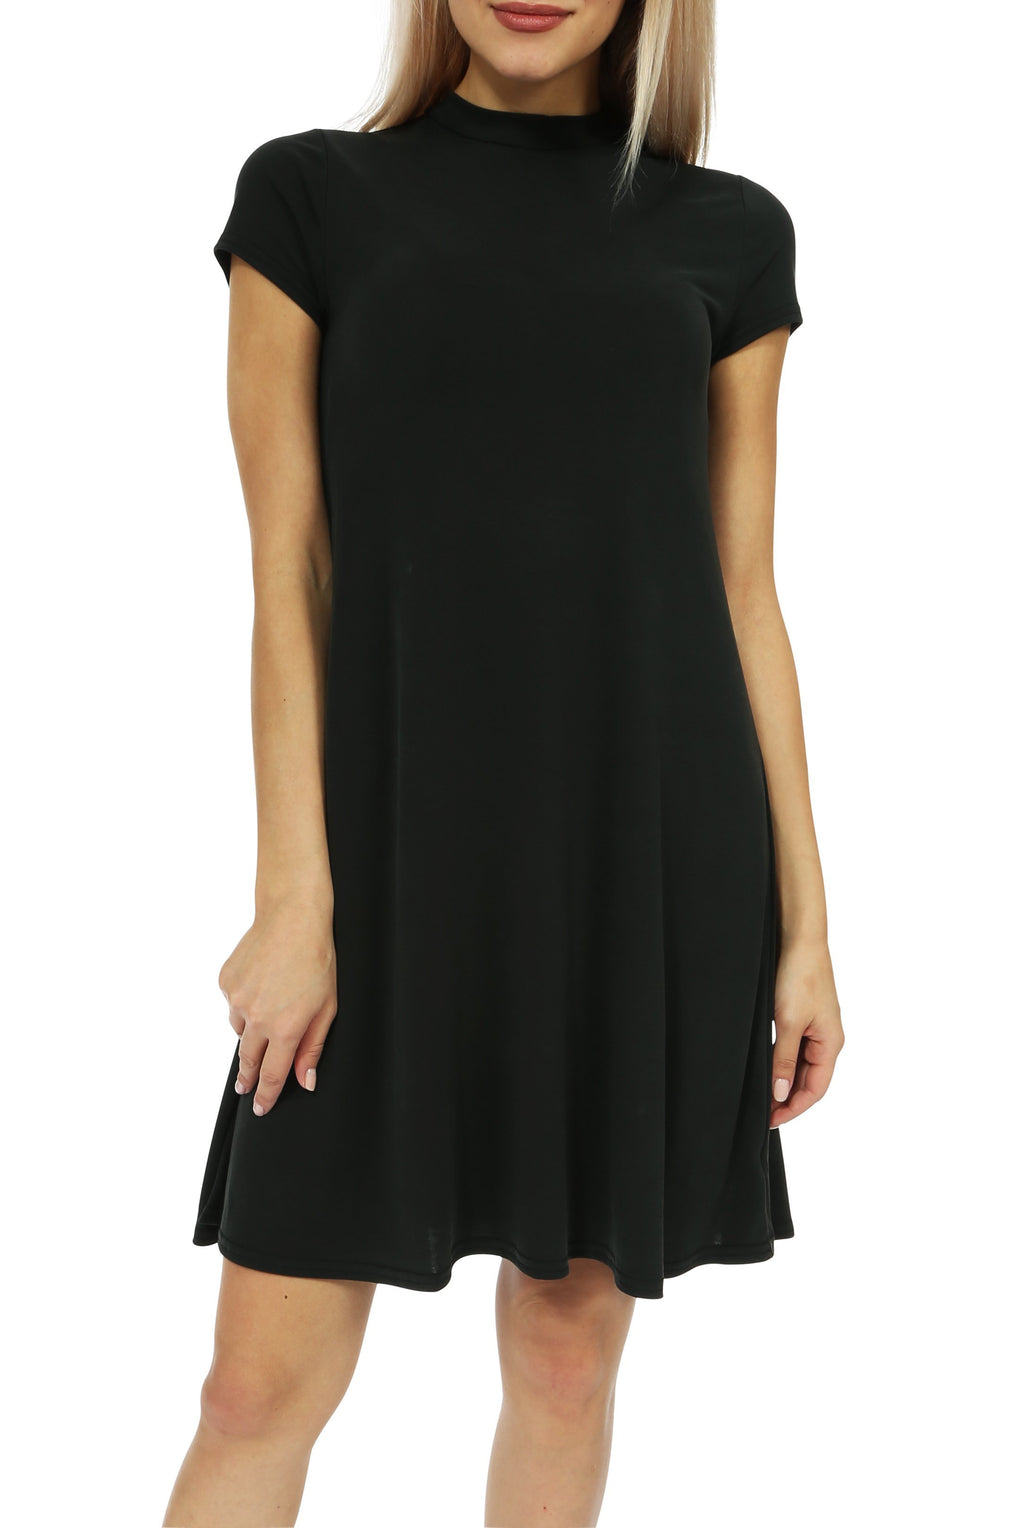 Teeze Me | Cap Sleeve Mock Neck Loose T-Shirt Dress | Black